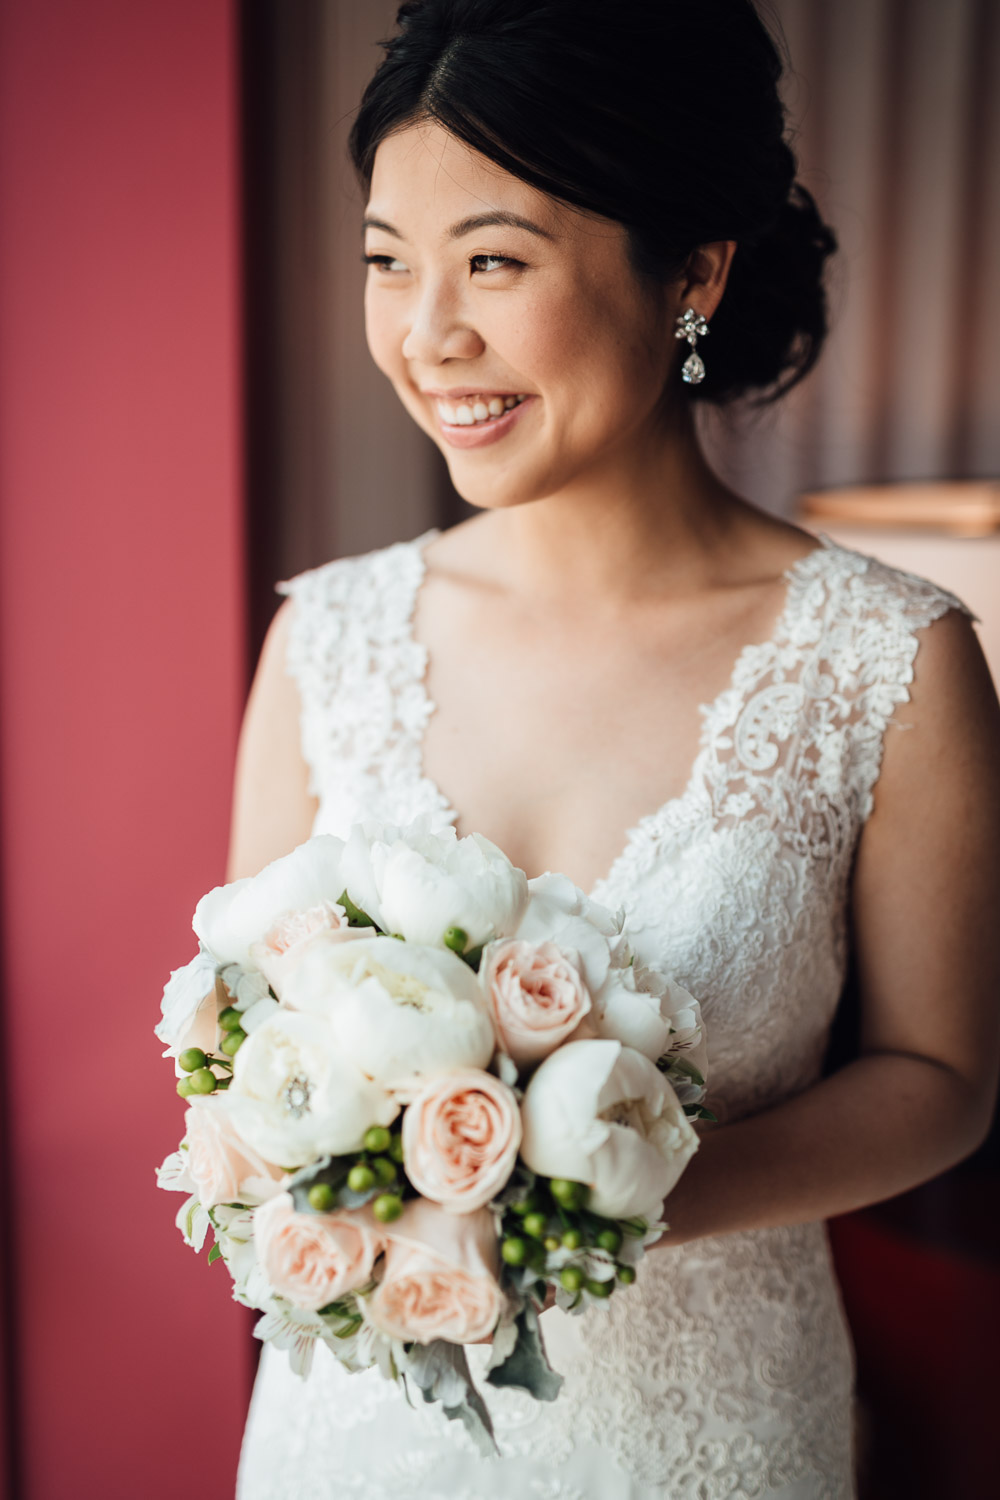 bride looking out window with bouquet vancouer wedding photography